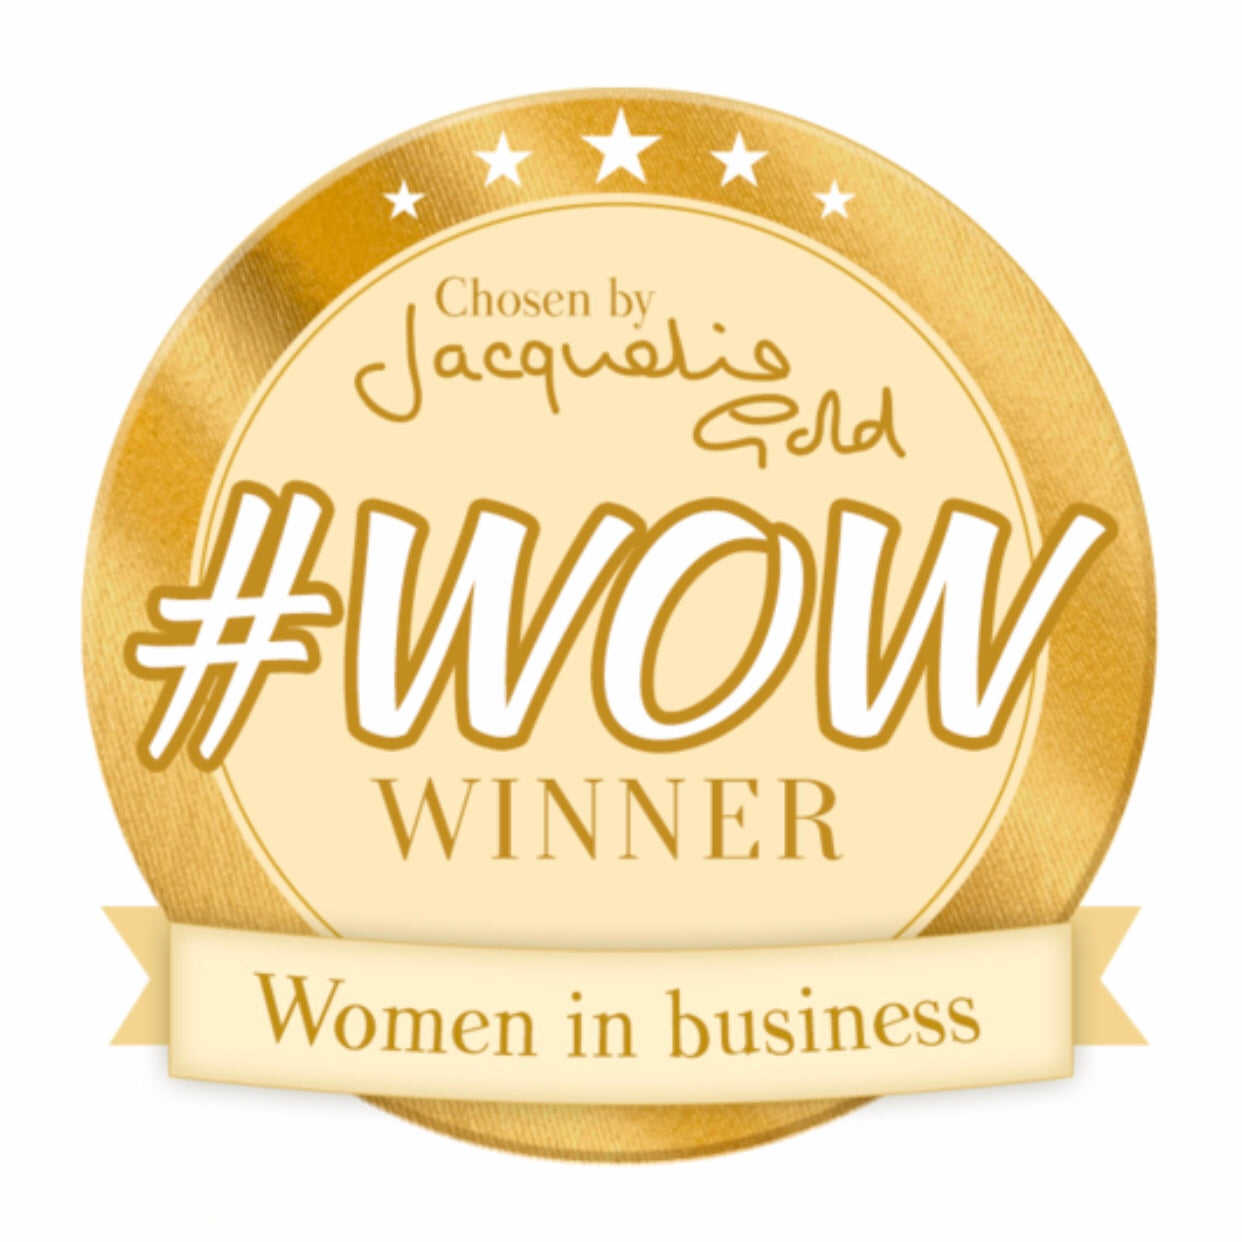 Winner of #WOW Women in Business by Jacqueline Gold